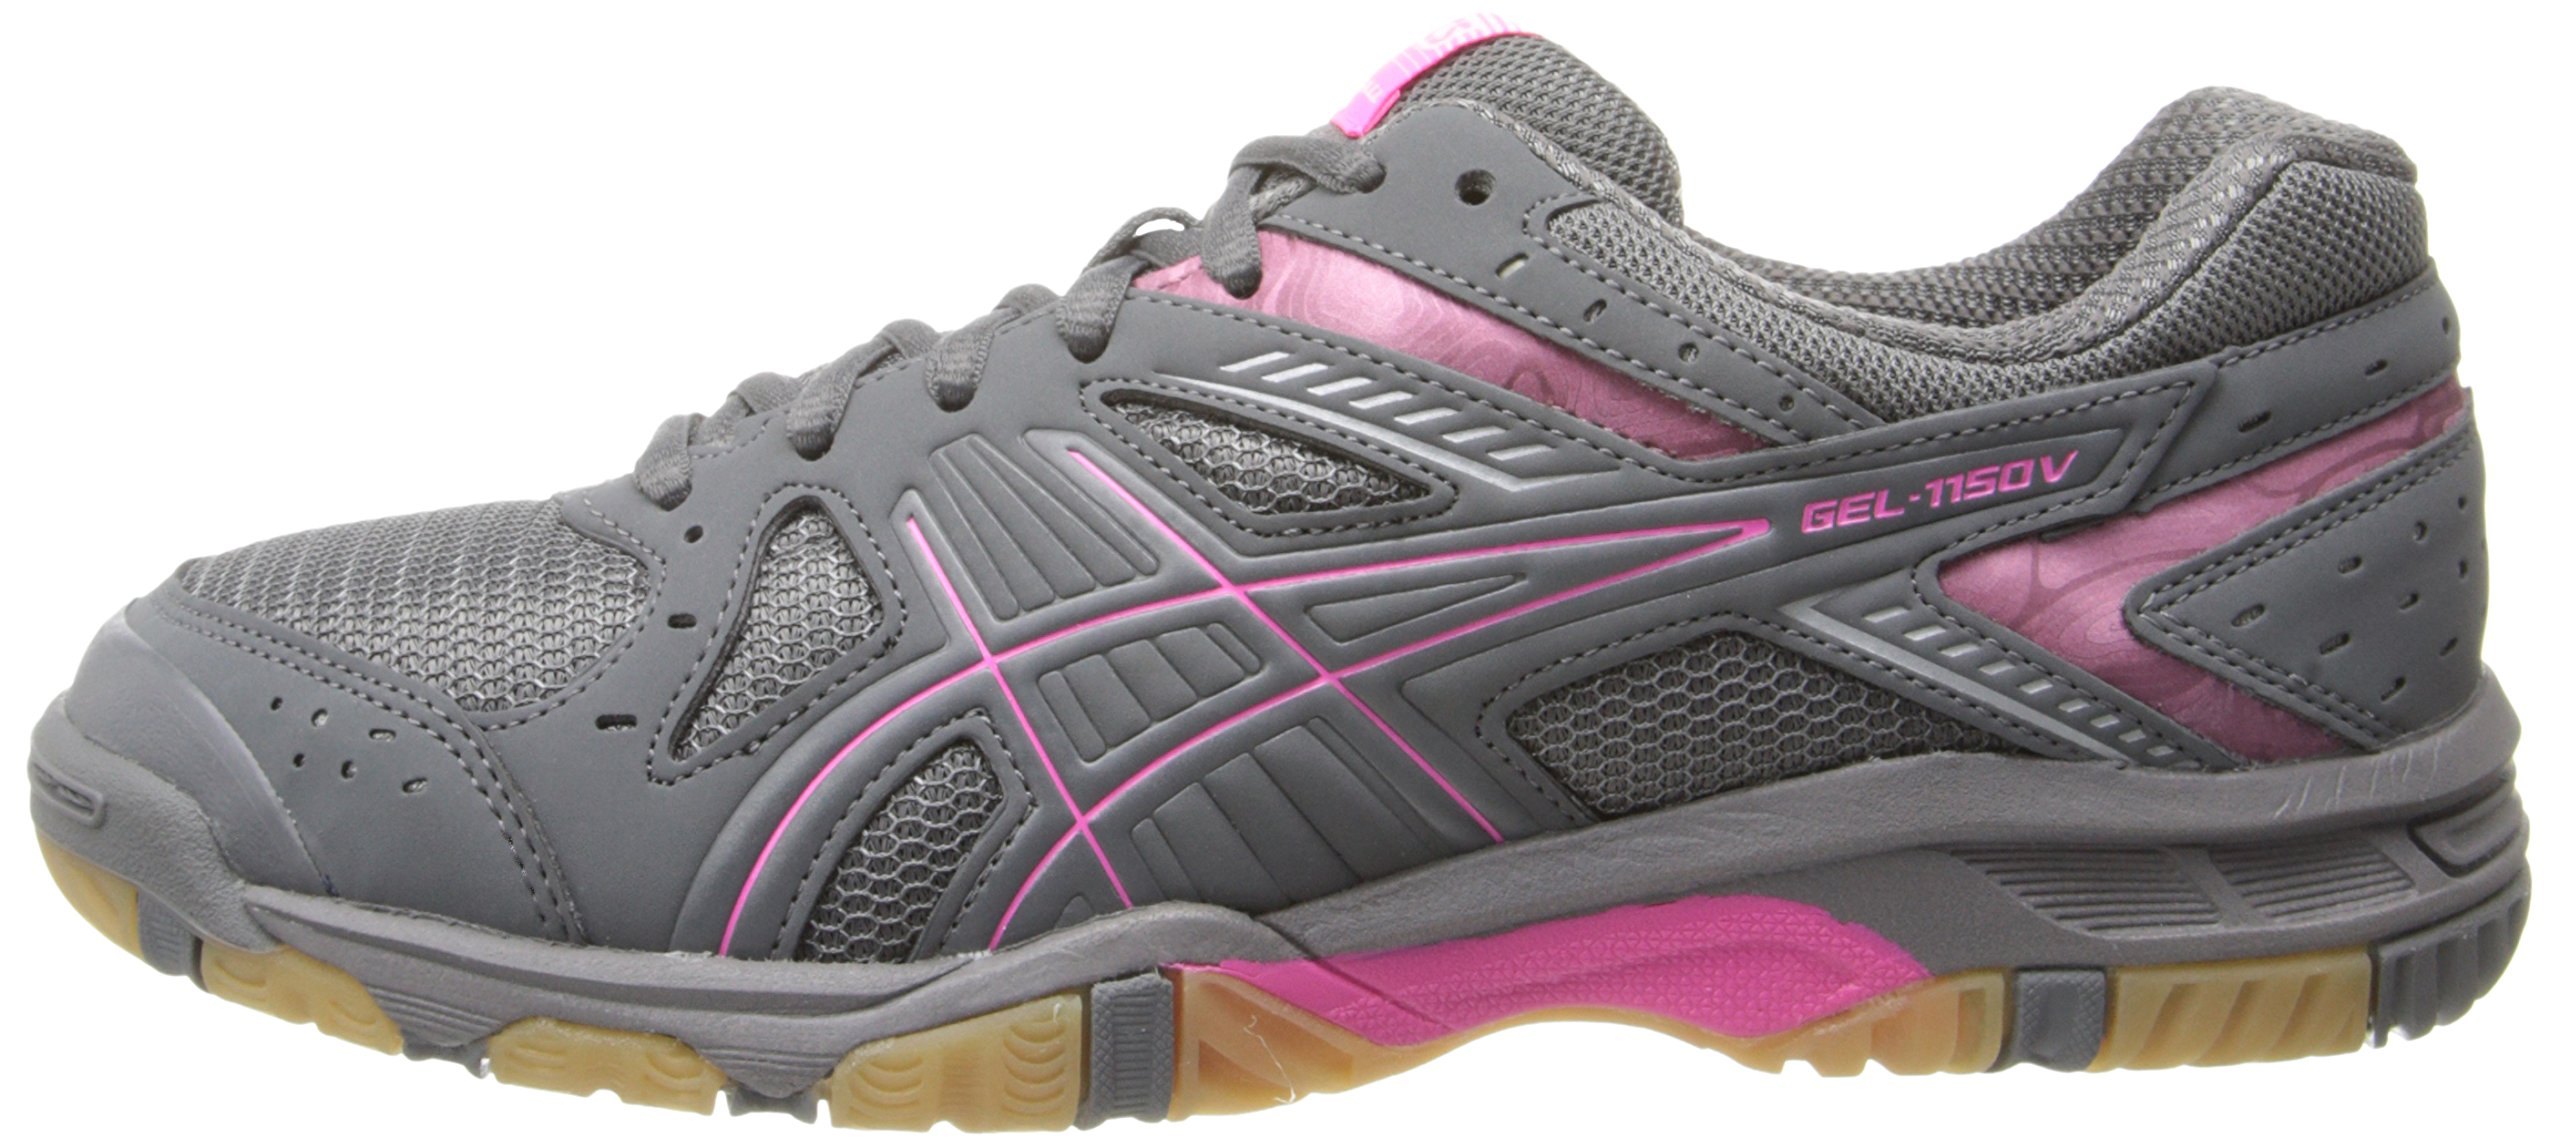 ASICS Women's Gel 1150V Volley Ball Shoe,Smoke/Knock Out Pink/Silver,8 M US by ASICS (Image #5)